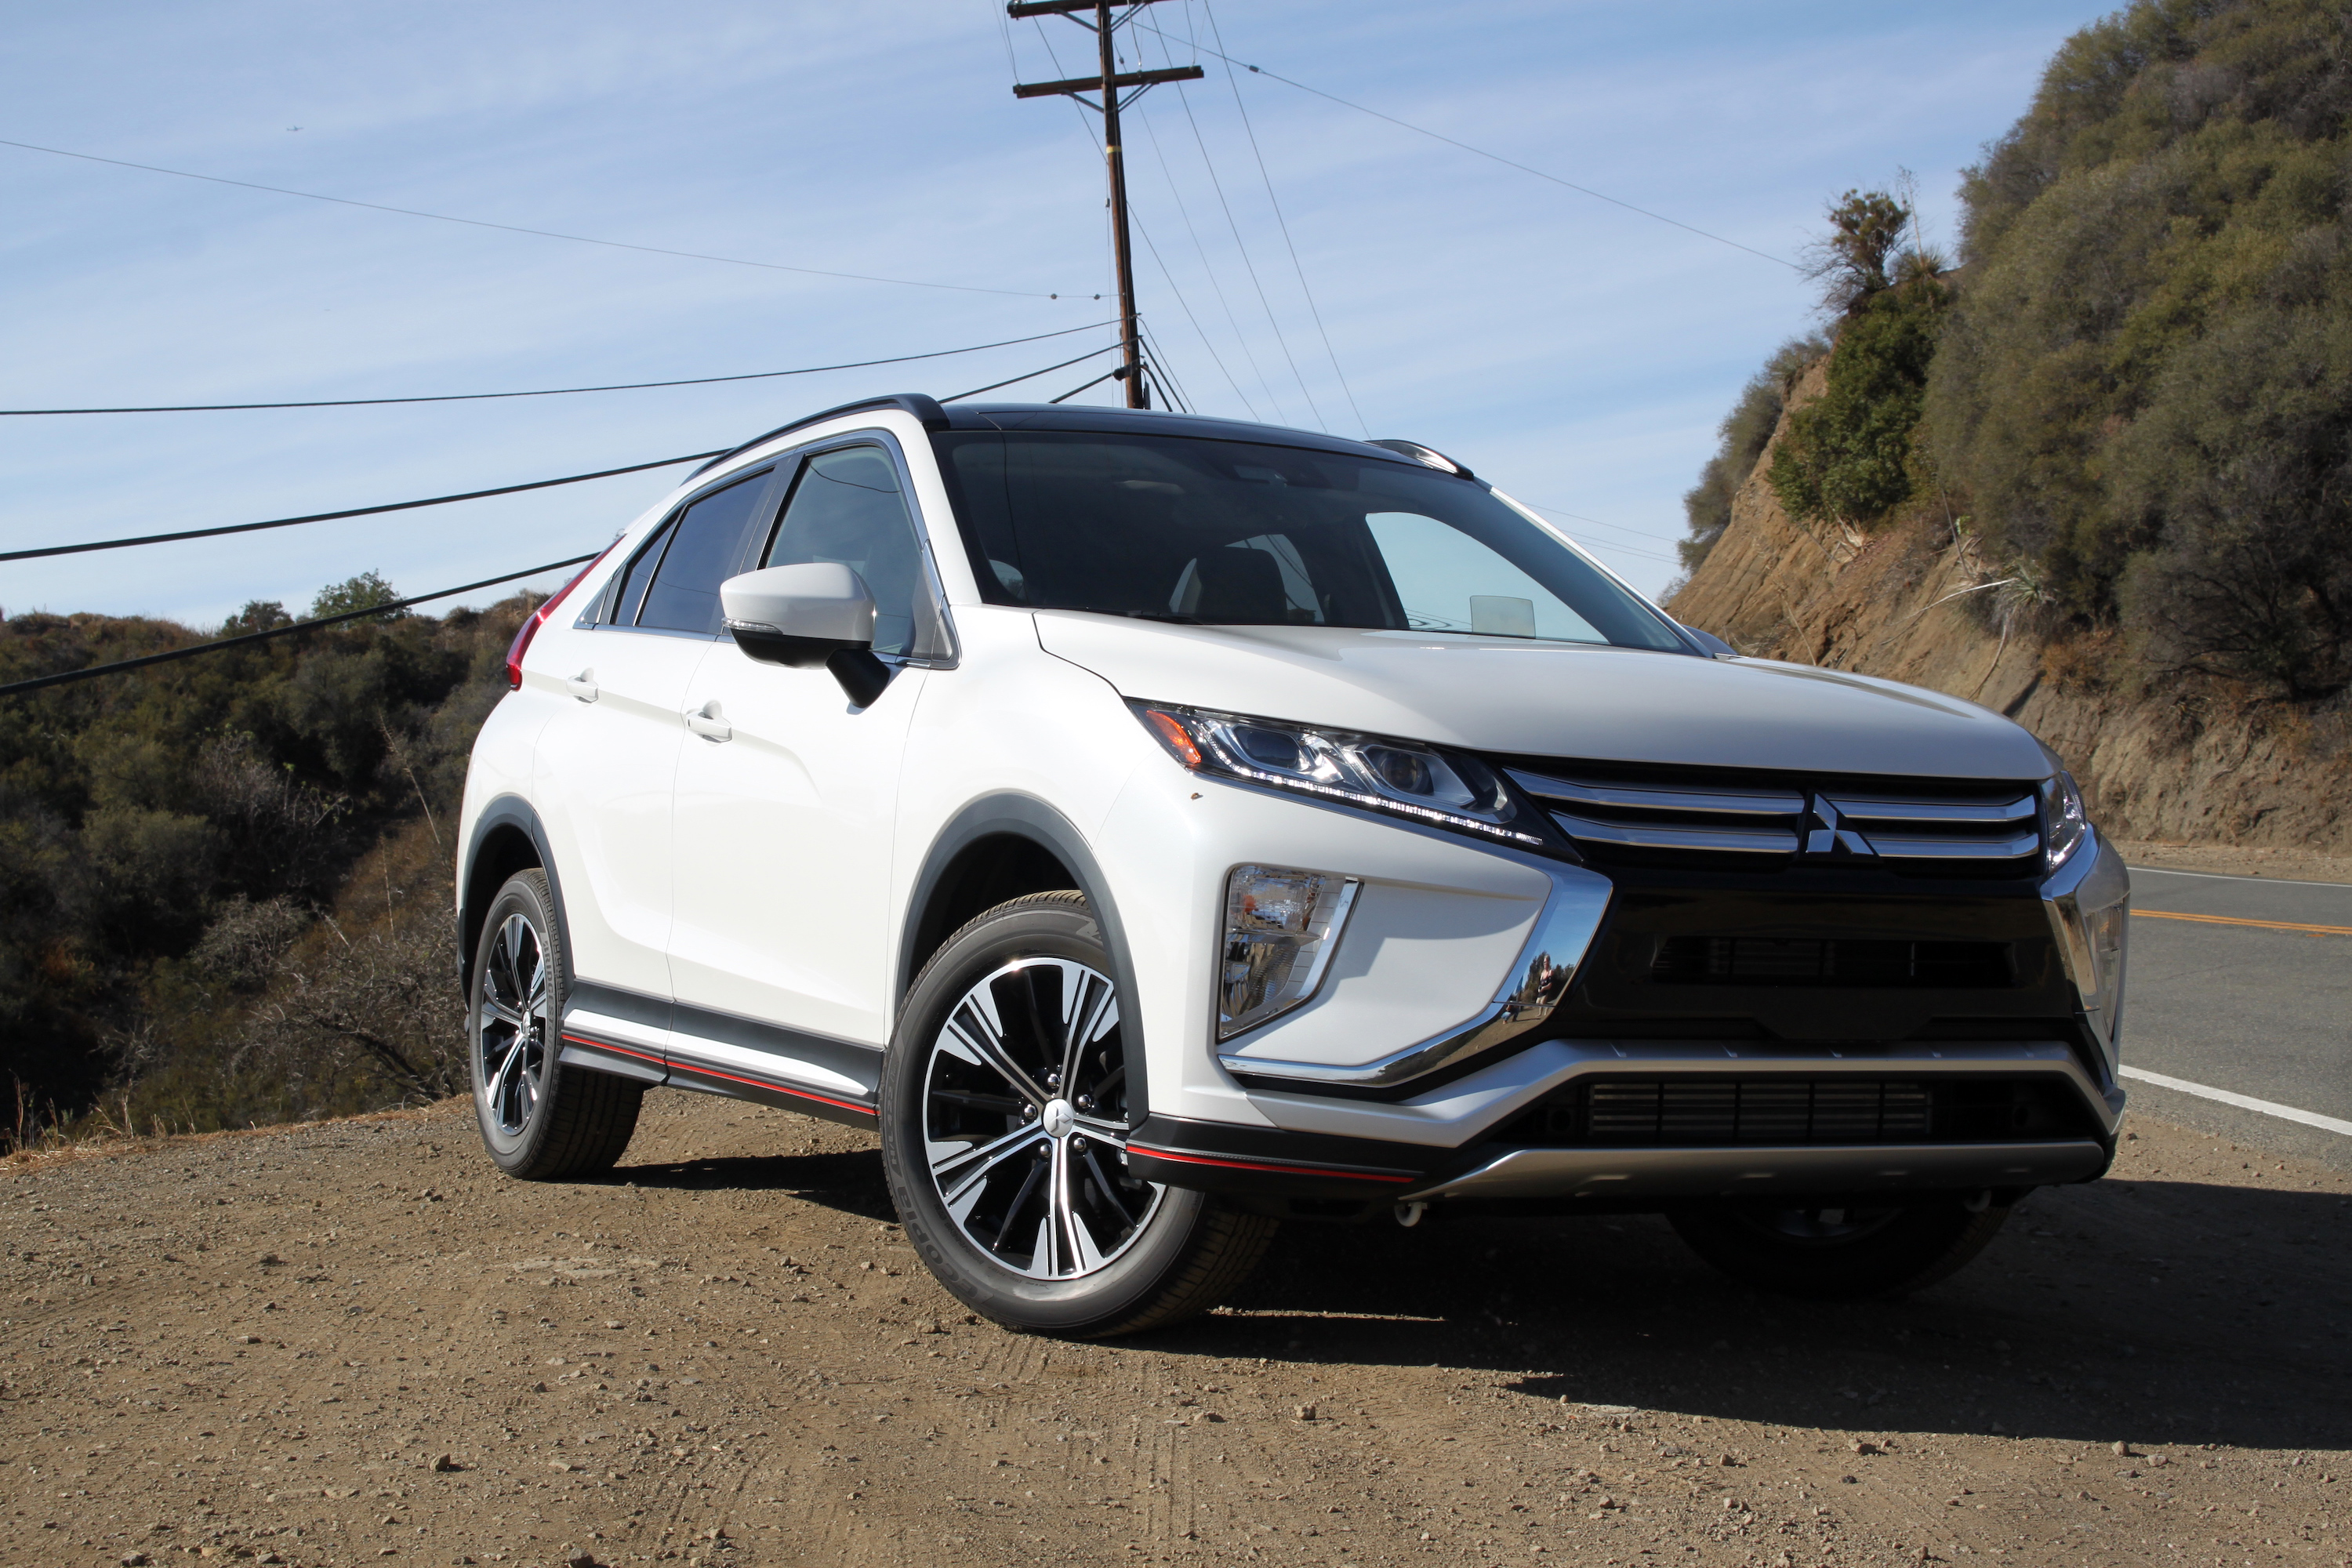 Cx 5 2018 >> 2018 Mitsubishi Eclipse Cross First Drive and Review - AutoGuide.com